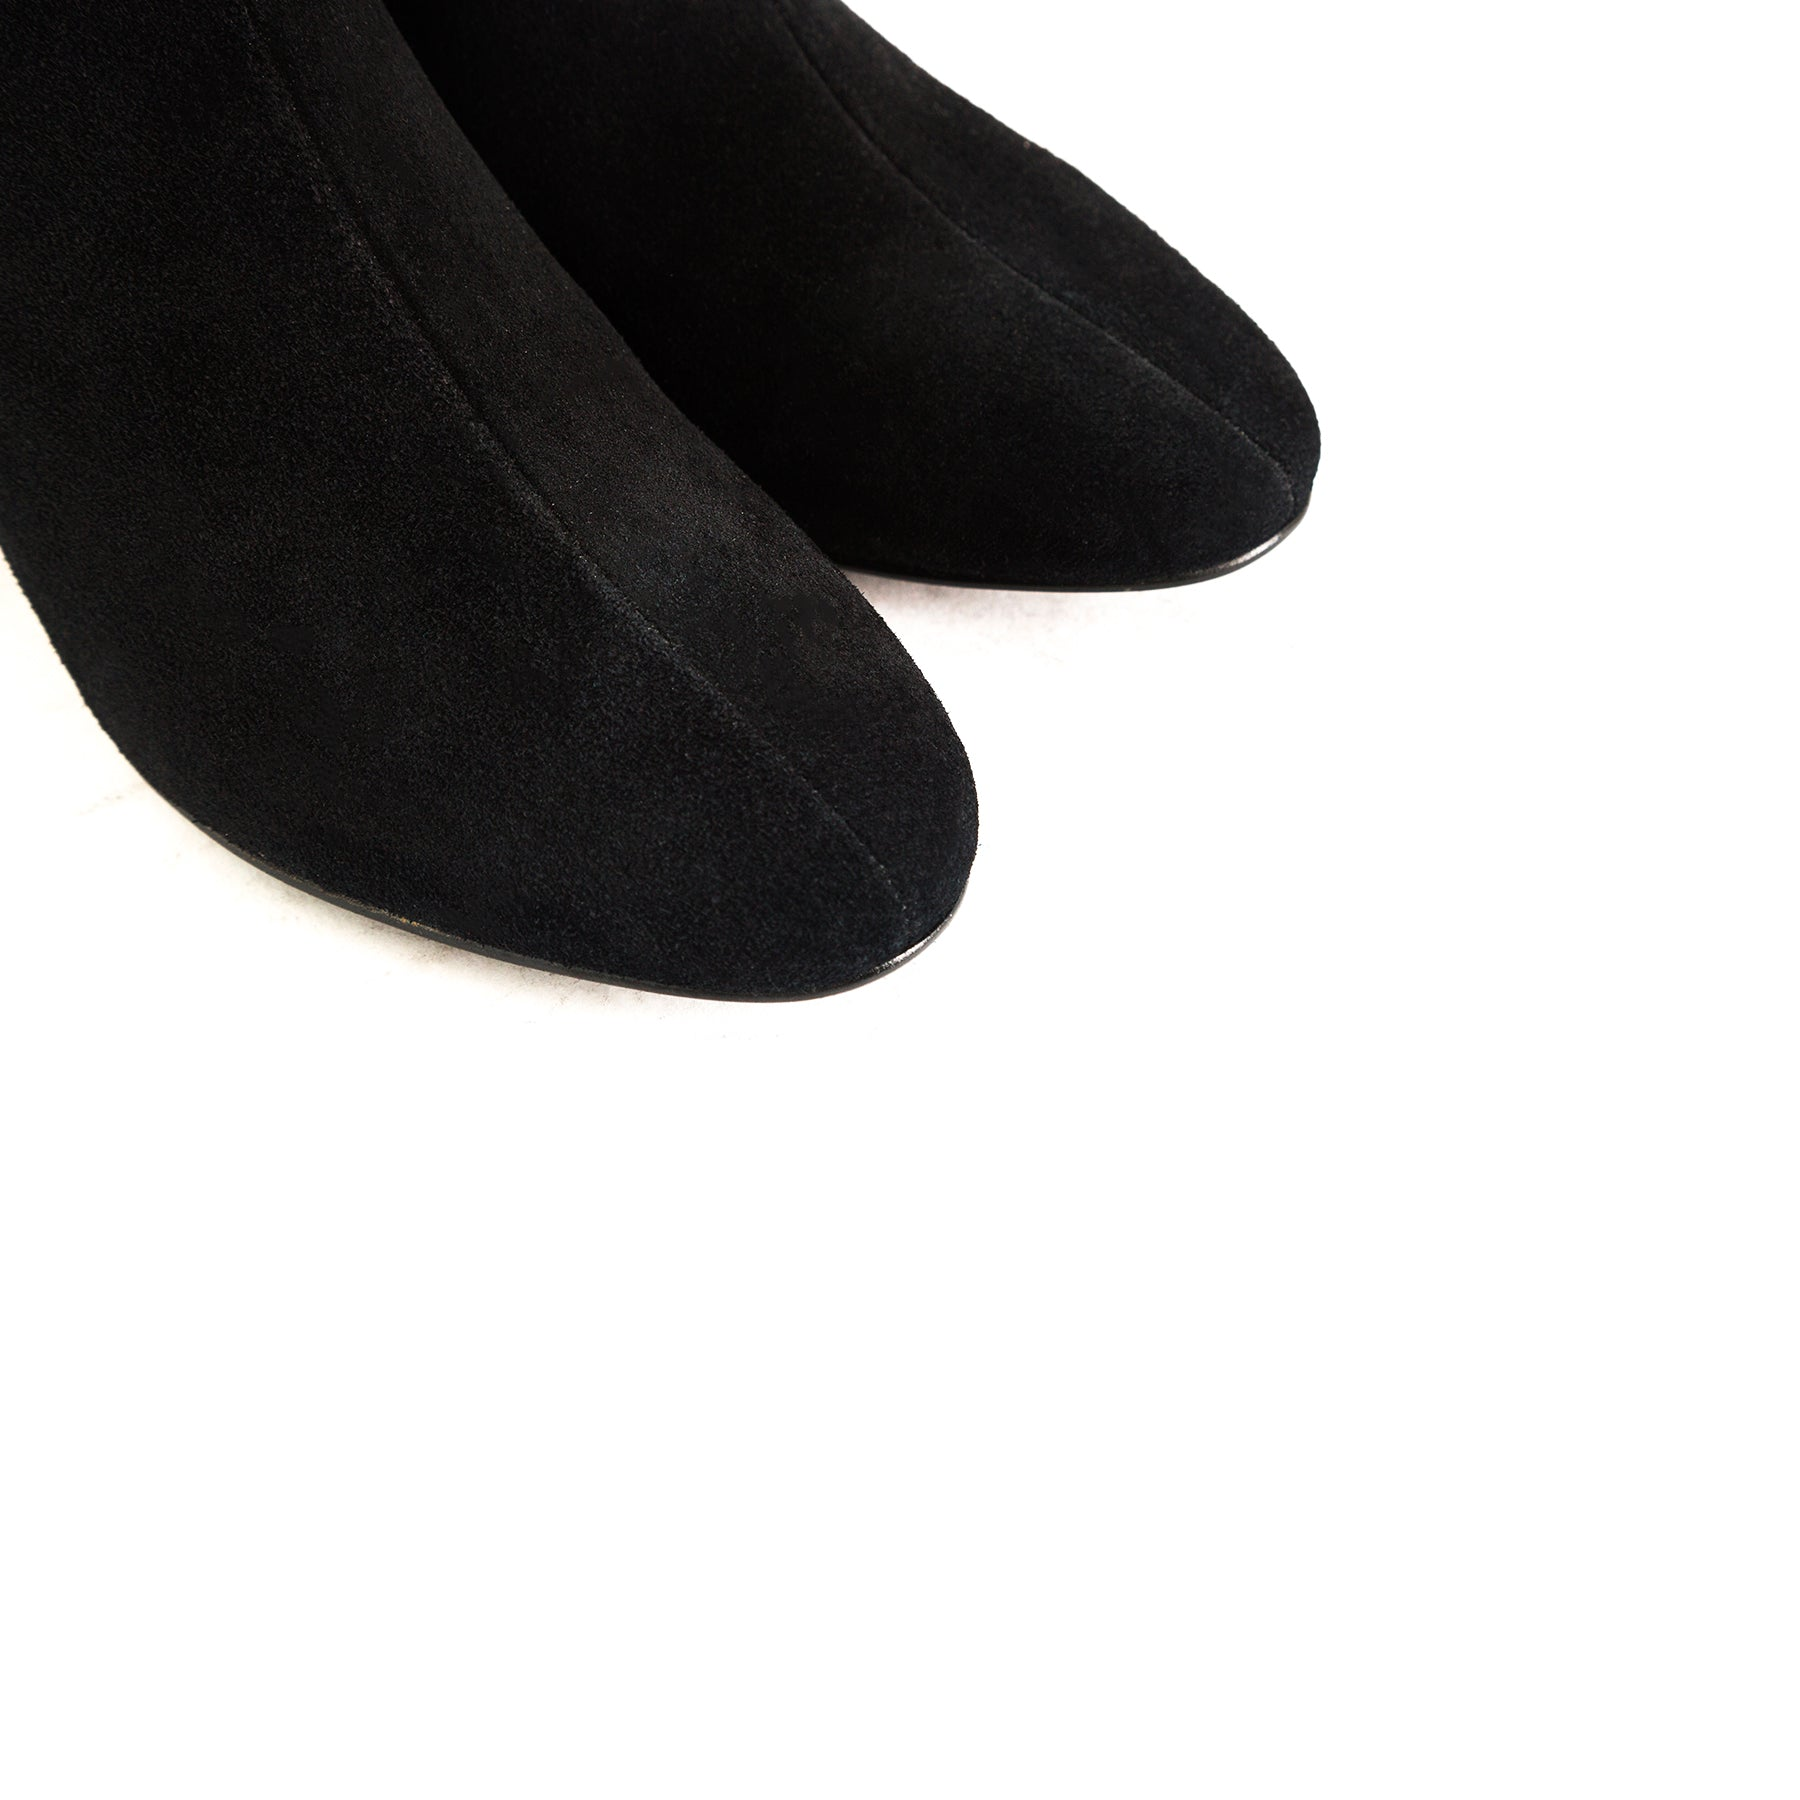 Ithaca Black Suede Ankle Boots